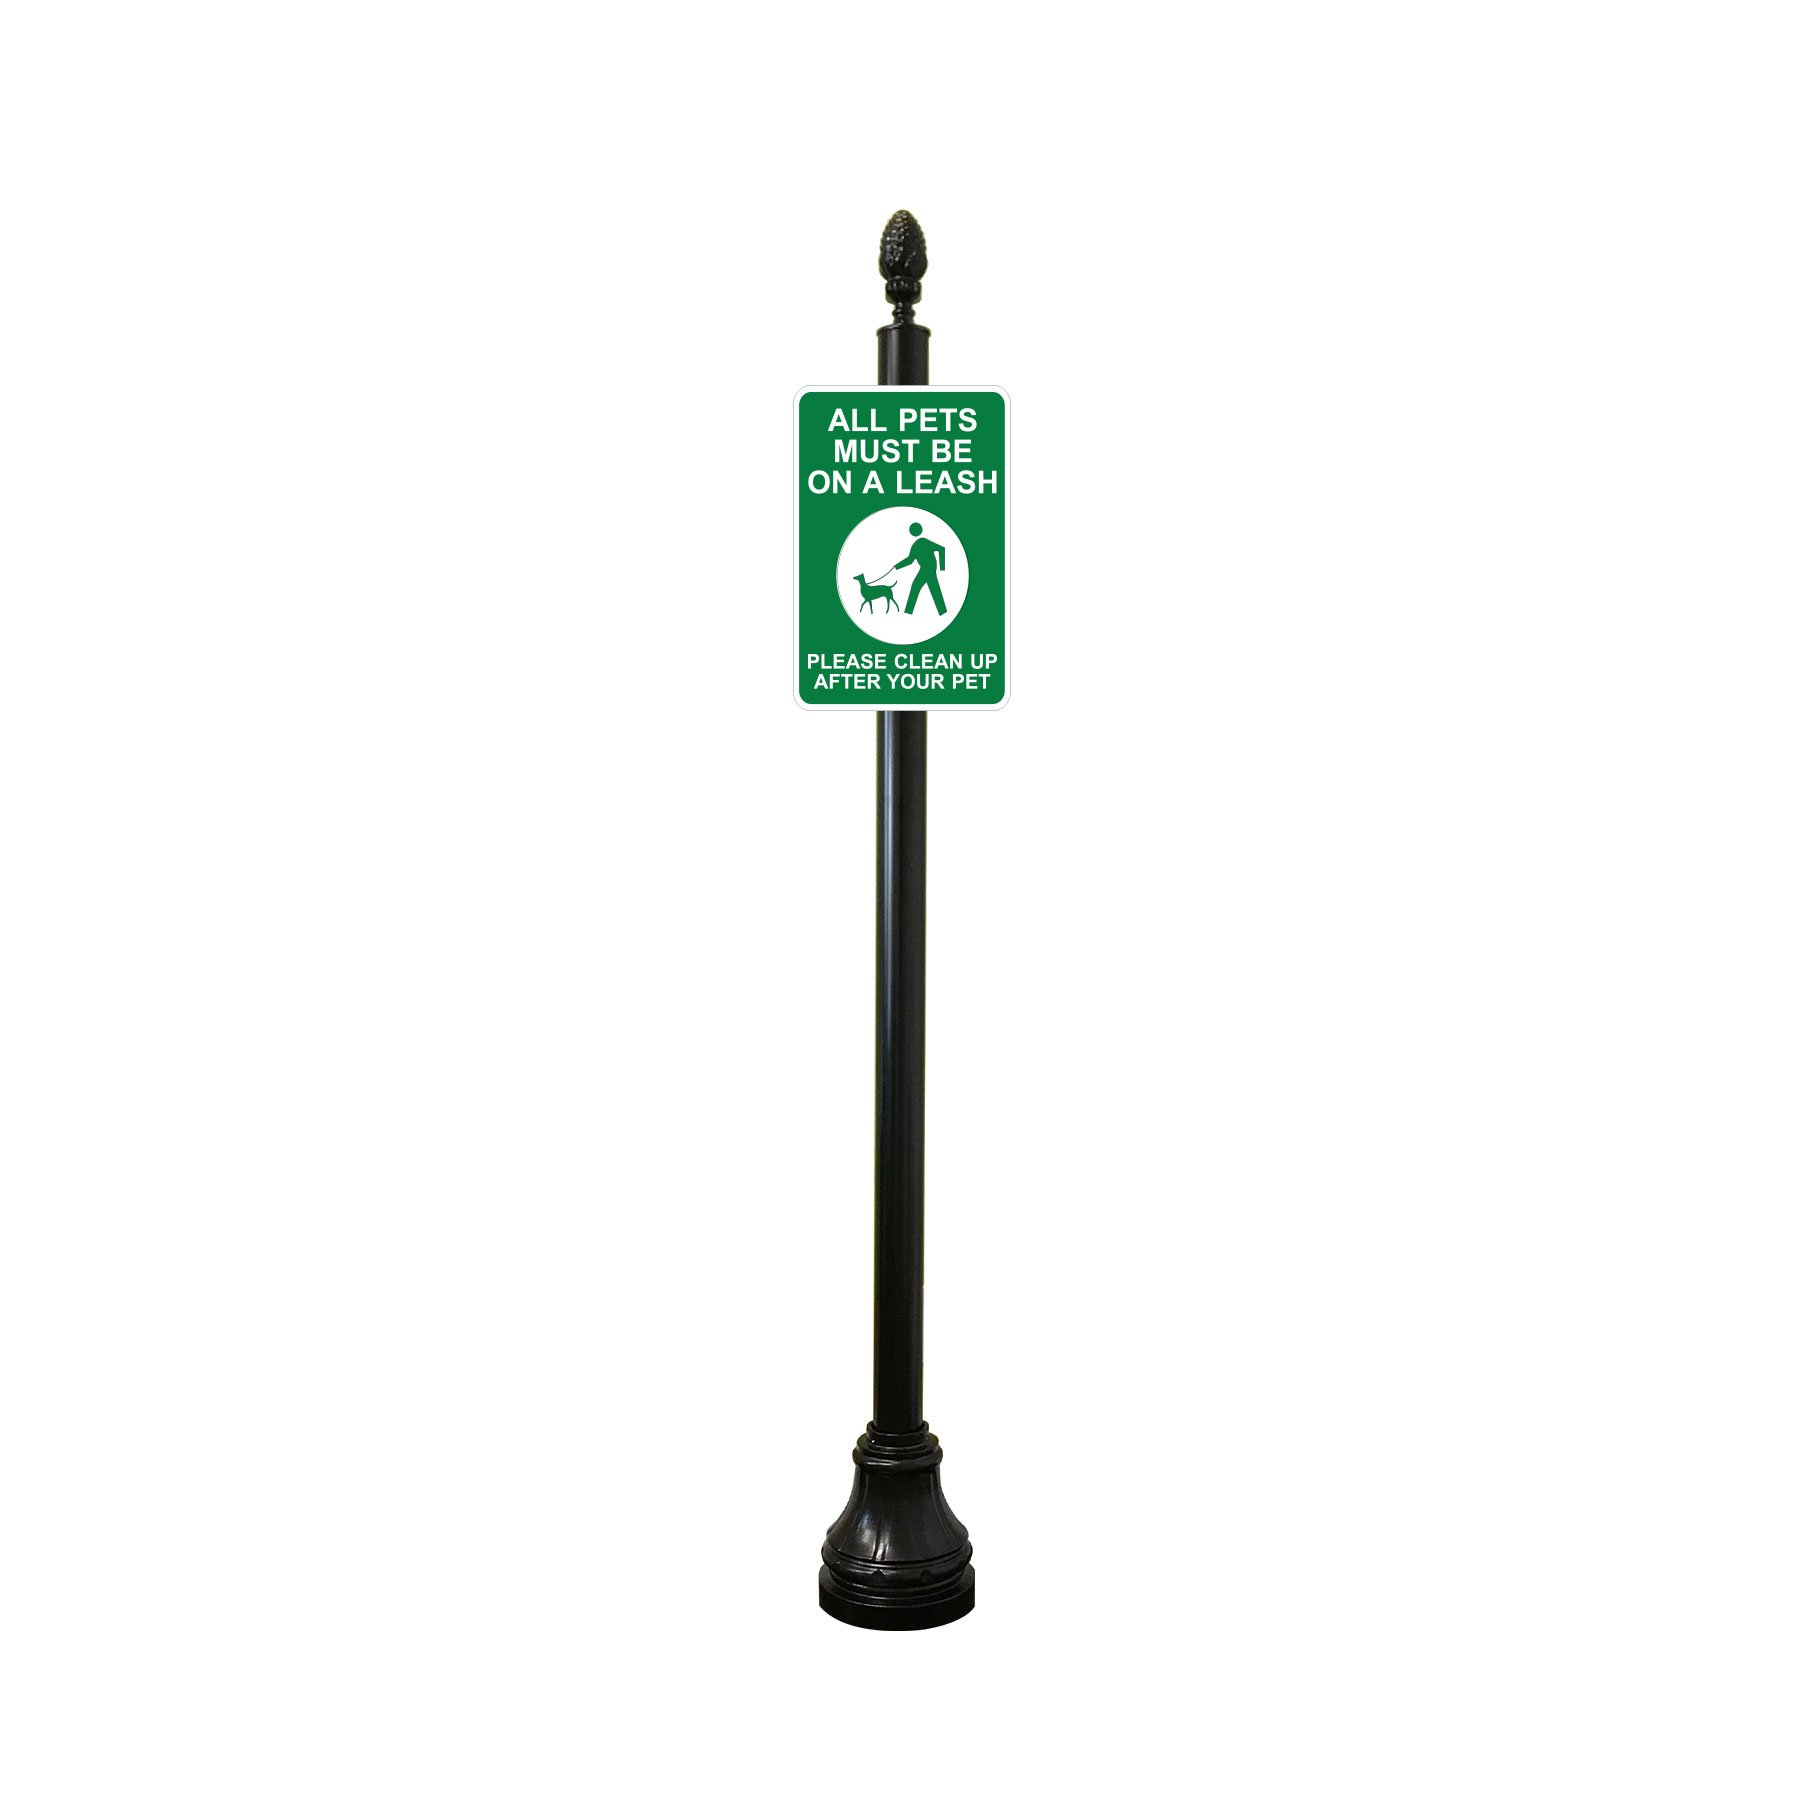 Reflective Keep Dog on Leash / Clean up After Your Pet Sign with Decorative Sign Post (Pineapple Finial, Bell Base)